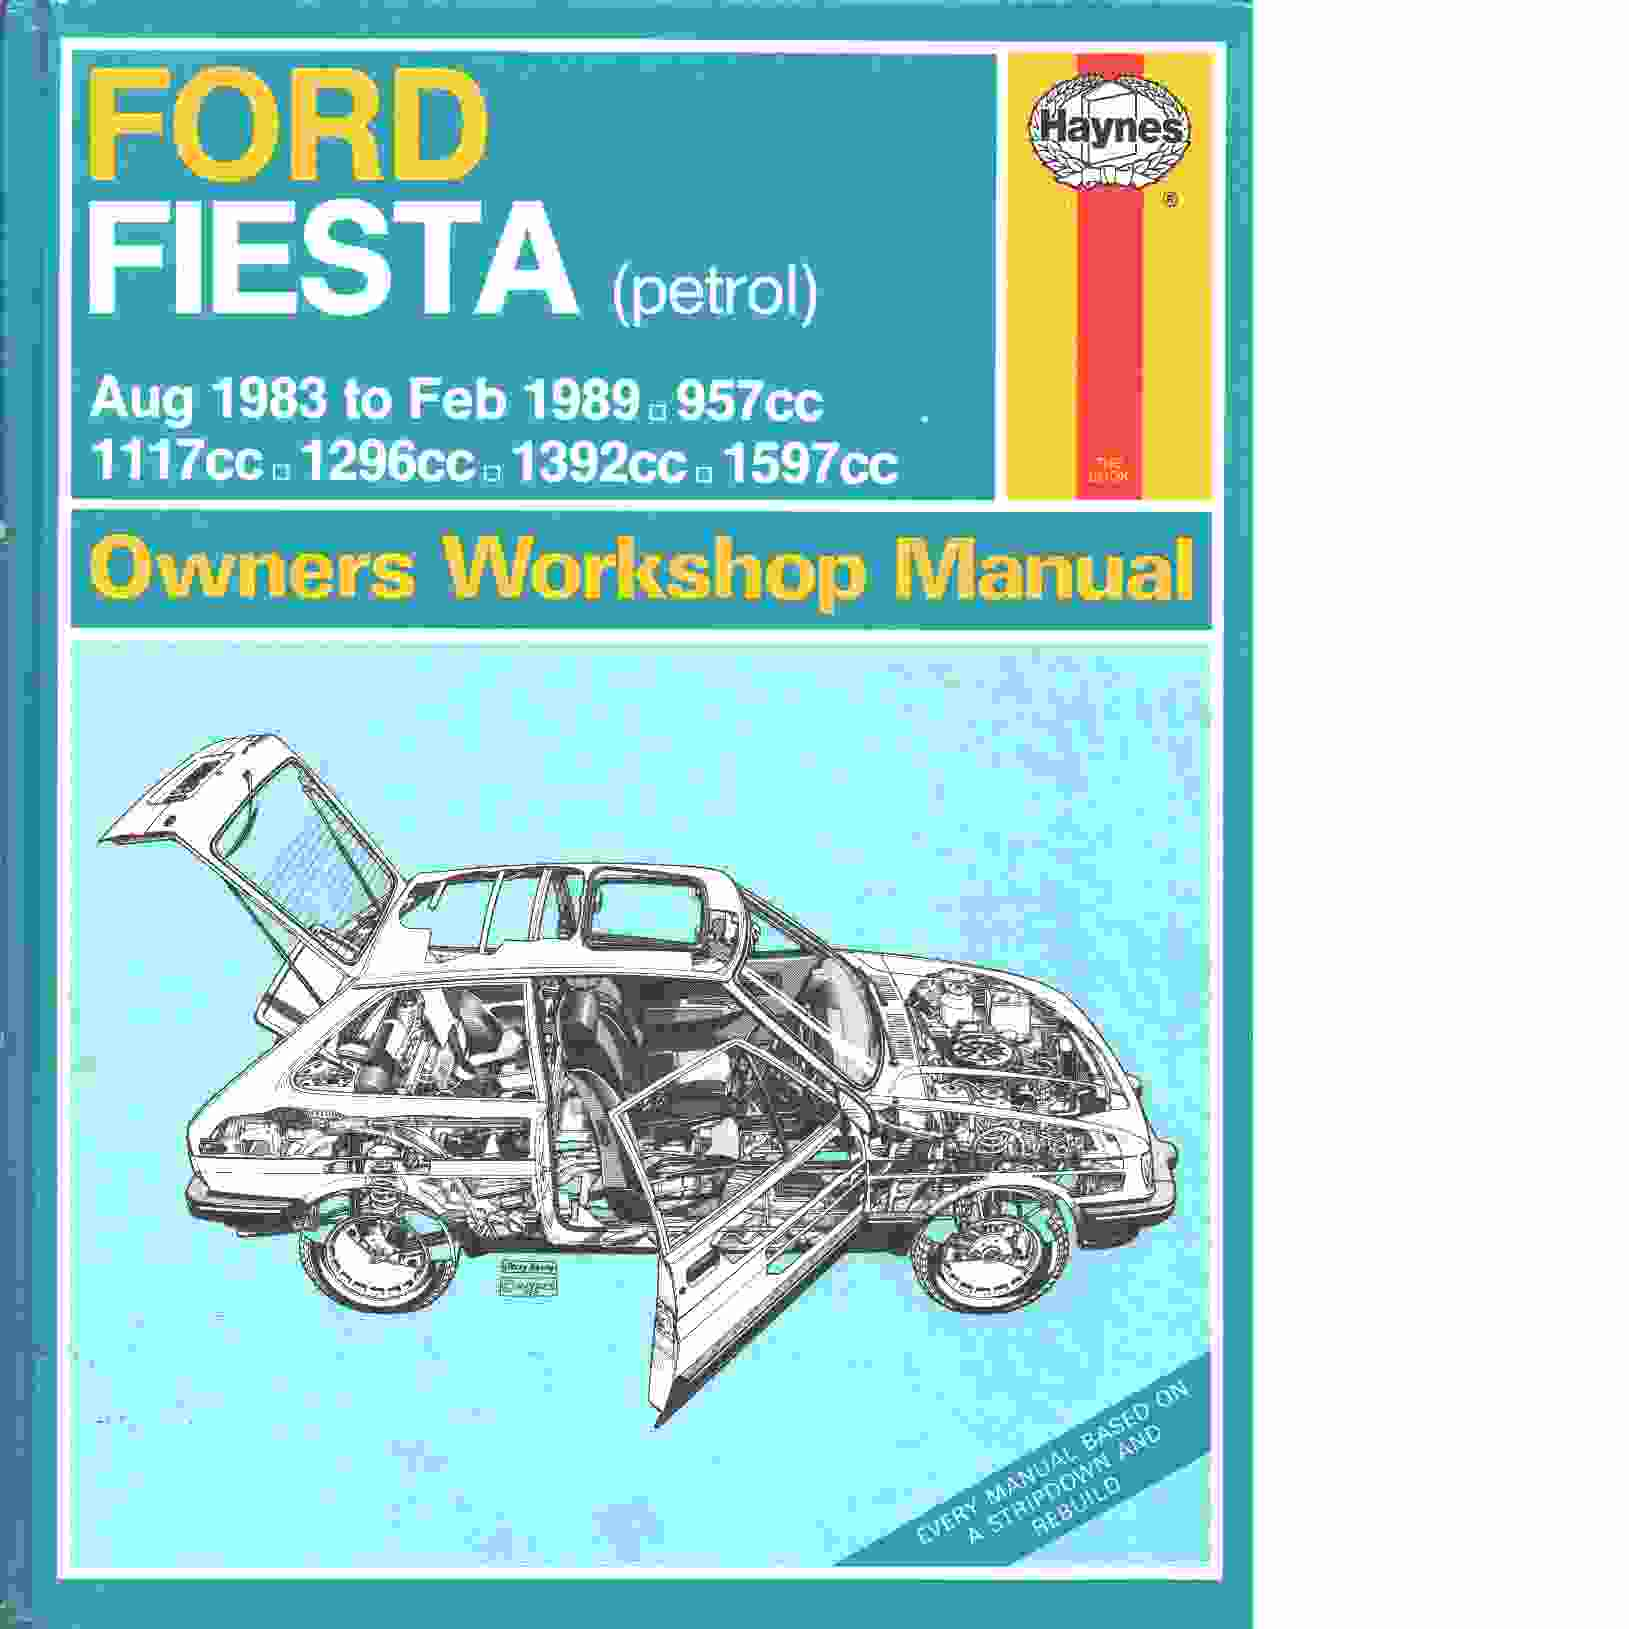 Ford Fiesta owners workshop manual  Aug 1983 to Feb 1989, 957cc, 1117cc, 1296cc, 1392cc and 1597cc. - Coomber, Ian